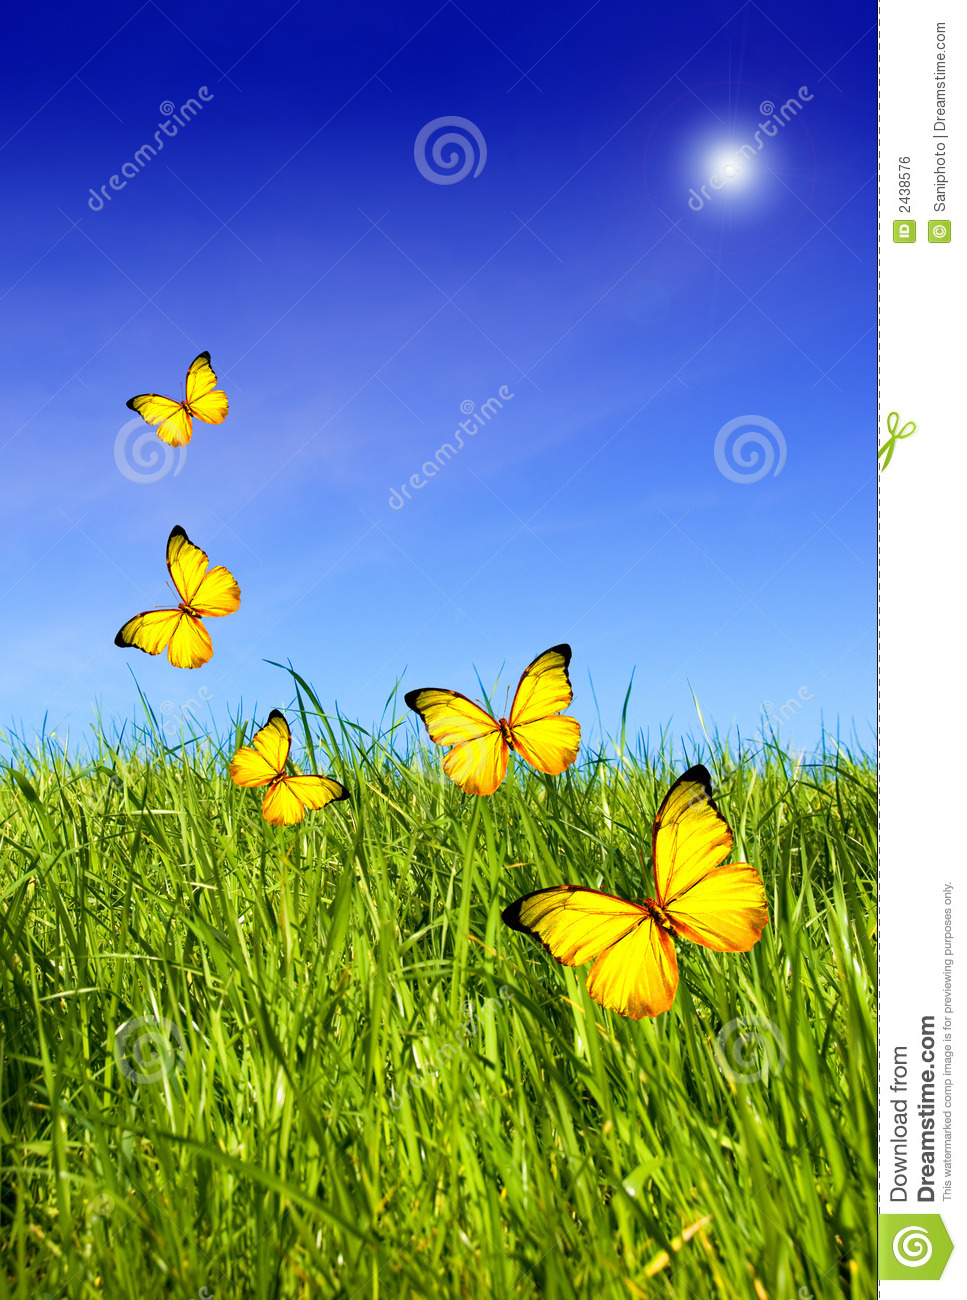 Animal Rights Wallpaper Butterflies Over Grass Stock Photo Image Of Butterflies